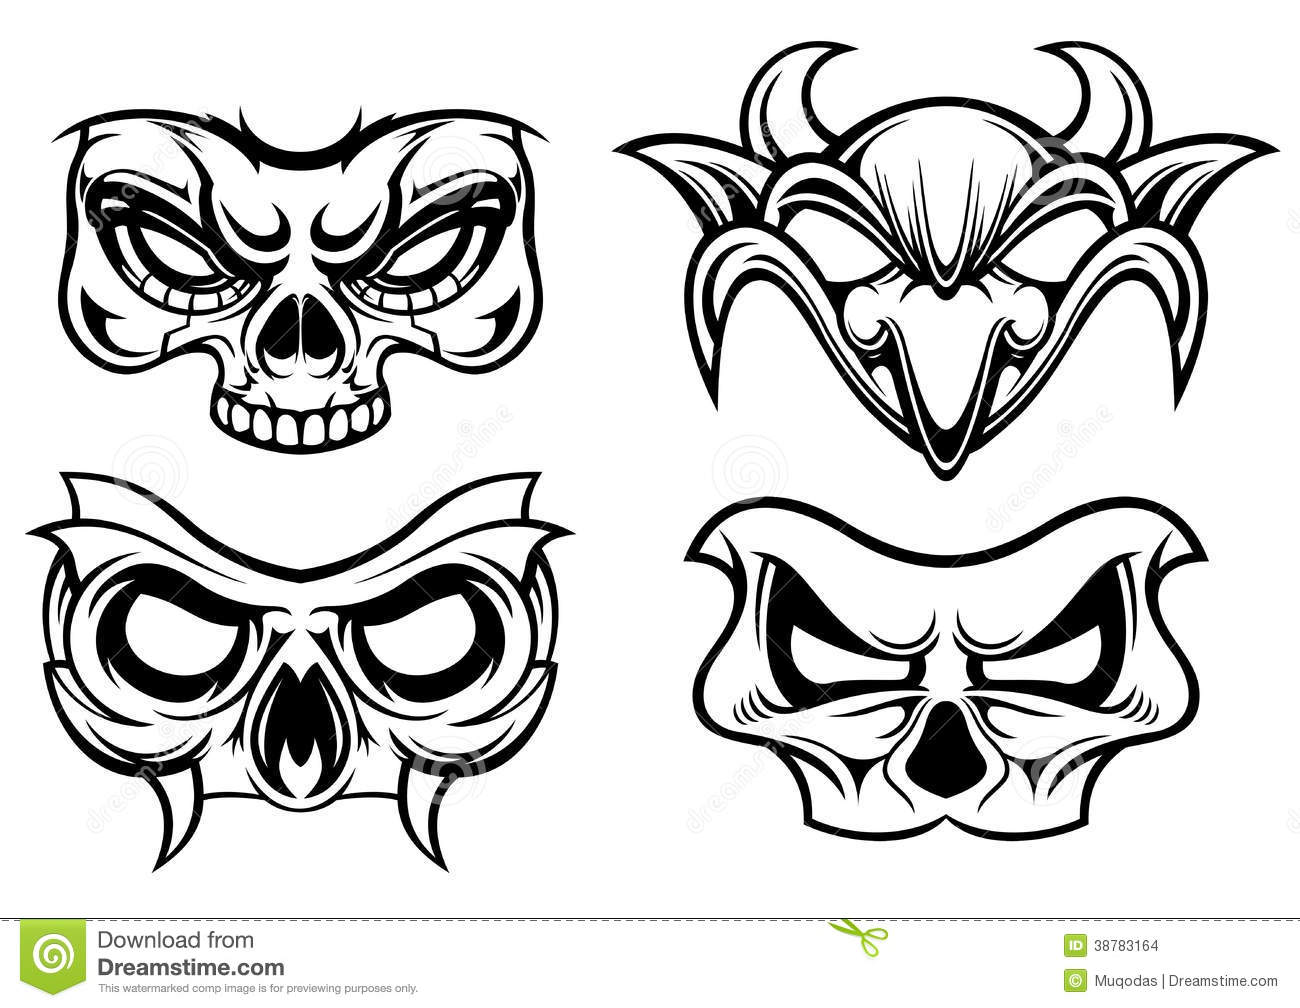 Maze 20S le also Cool Coloring Pages furthermore Free Music Notes Vector likewise Silhouette Glasses Vector also Stock Image Halloween Ghost Creeping Image612391. on scary background music download